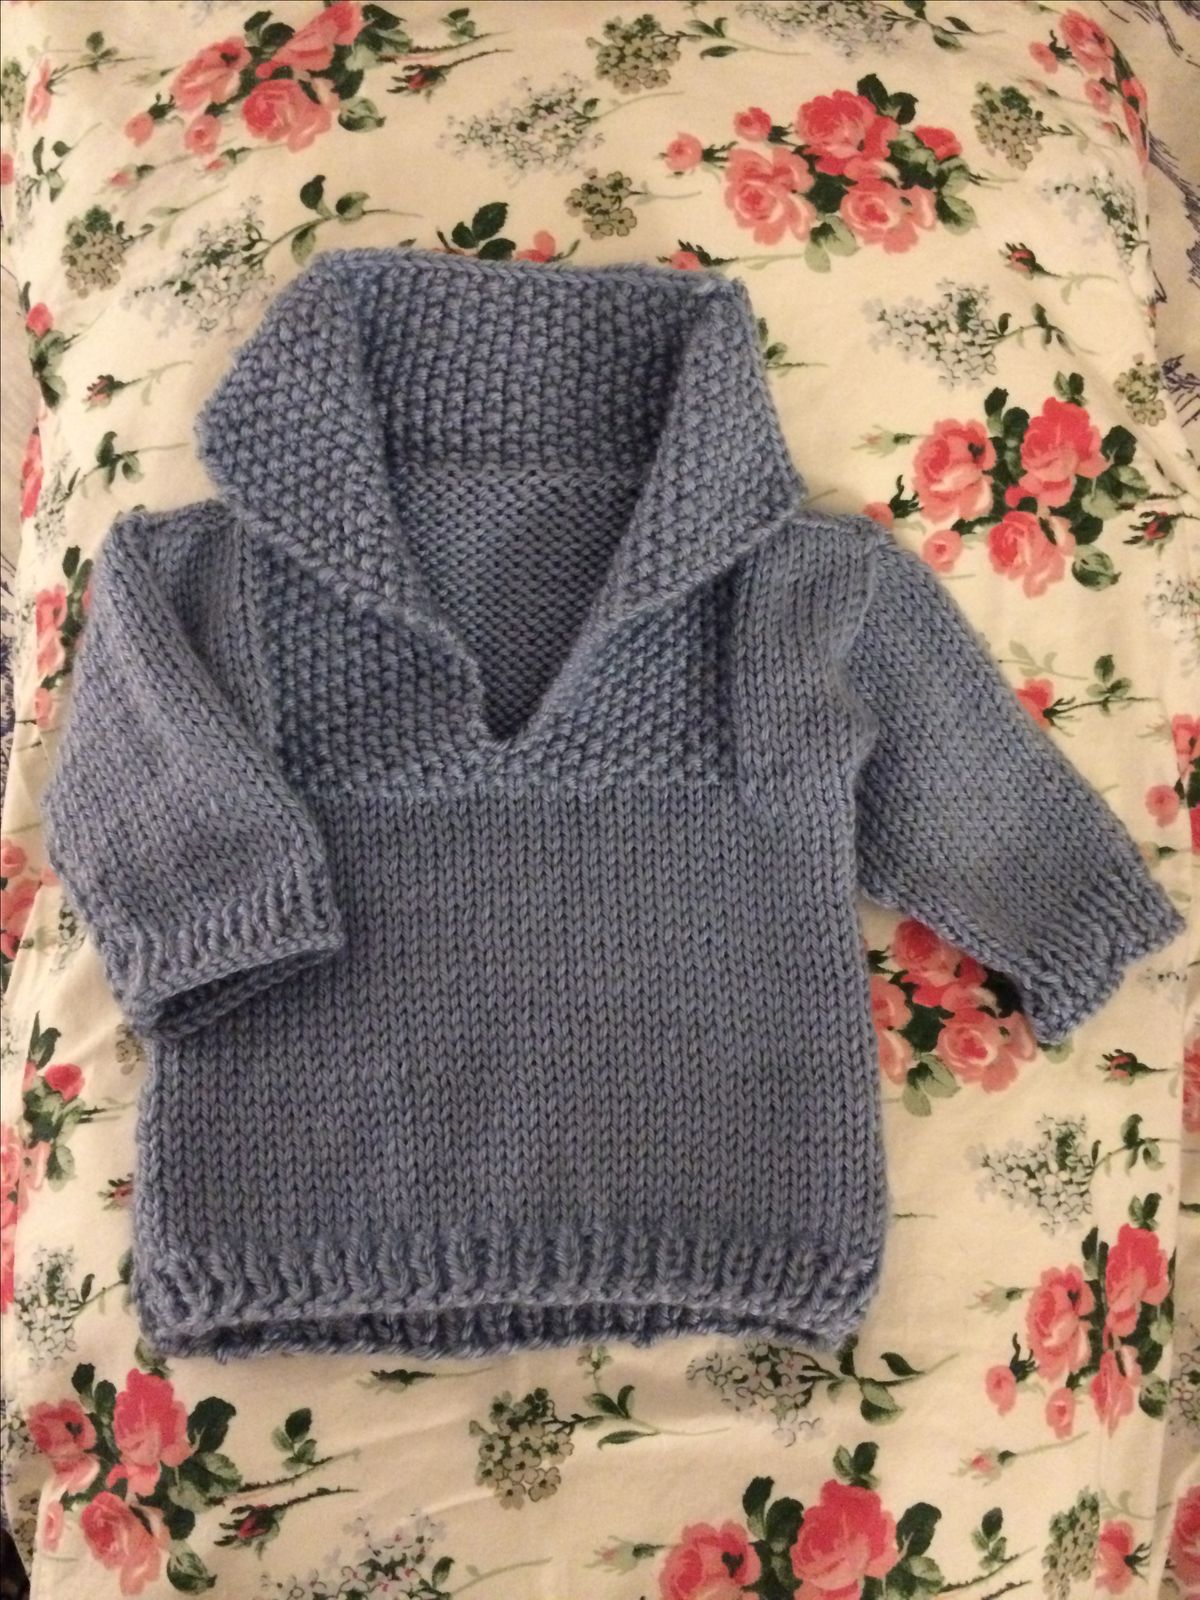 Easy Knitting Ideas Pinterest : Free easy knit baby sweater pattern by sooze